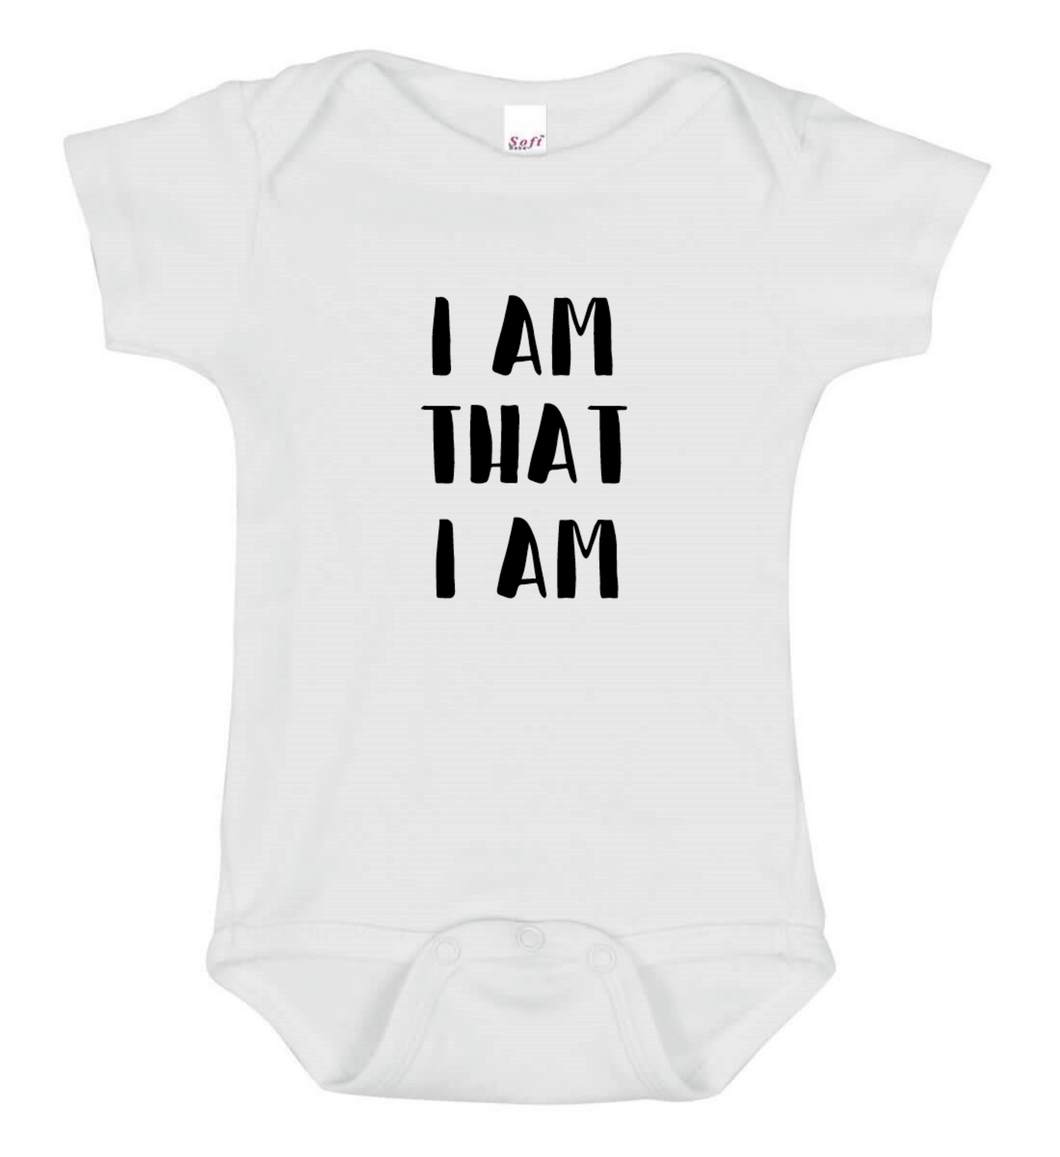 I am that I am Onesie - Goo Goo Blah Blah